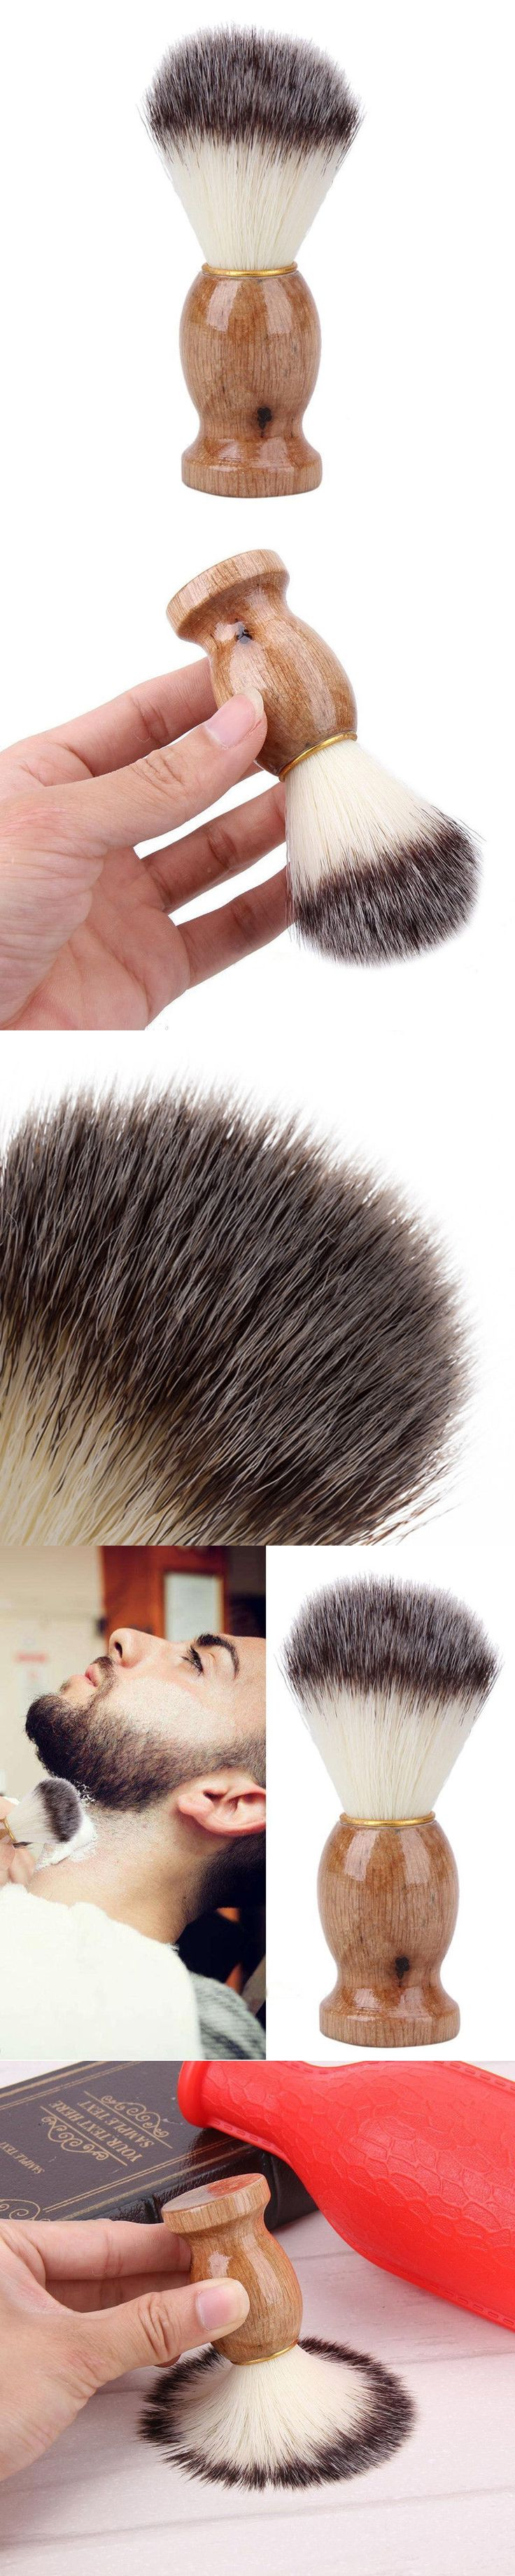 Men Shaving Bear Brush Bear Cleaning Brushes Best Badger Hair Shave Wooden Handle Razor Barber Tool Shave brush